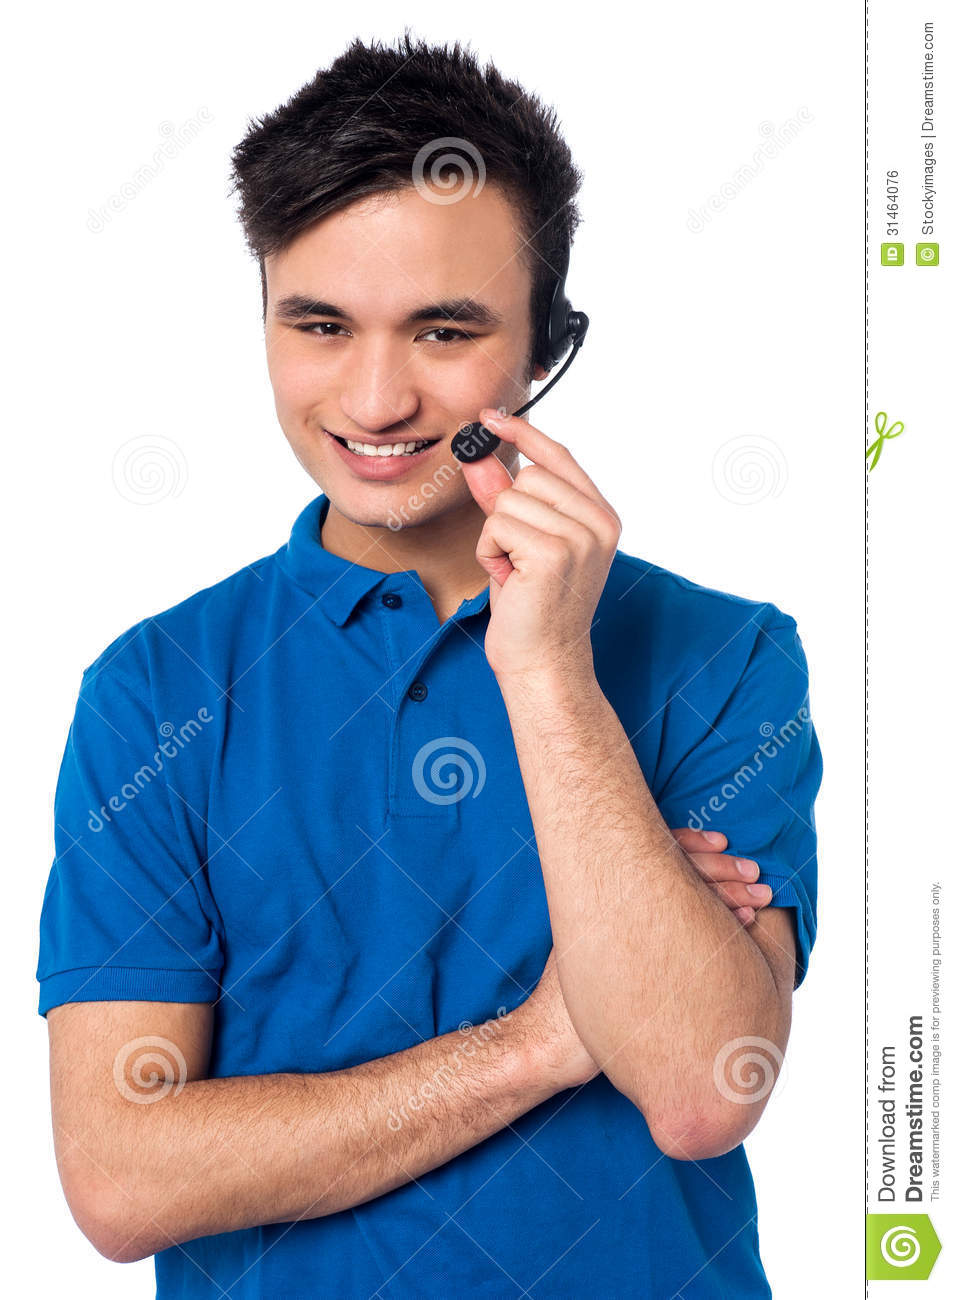 Happy Young Customer Support Executive Royalty Free Stock Image  Image 31464076